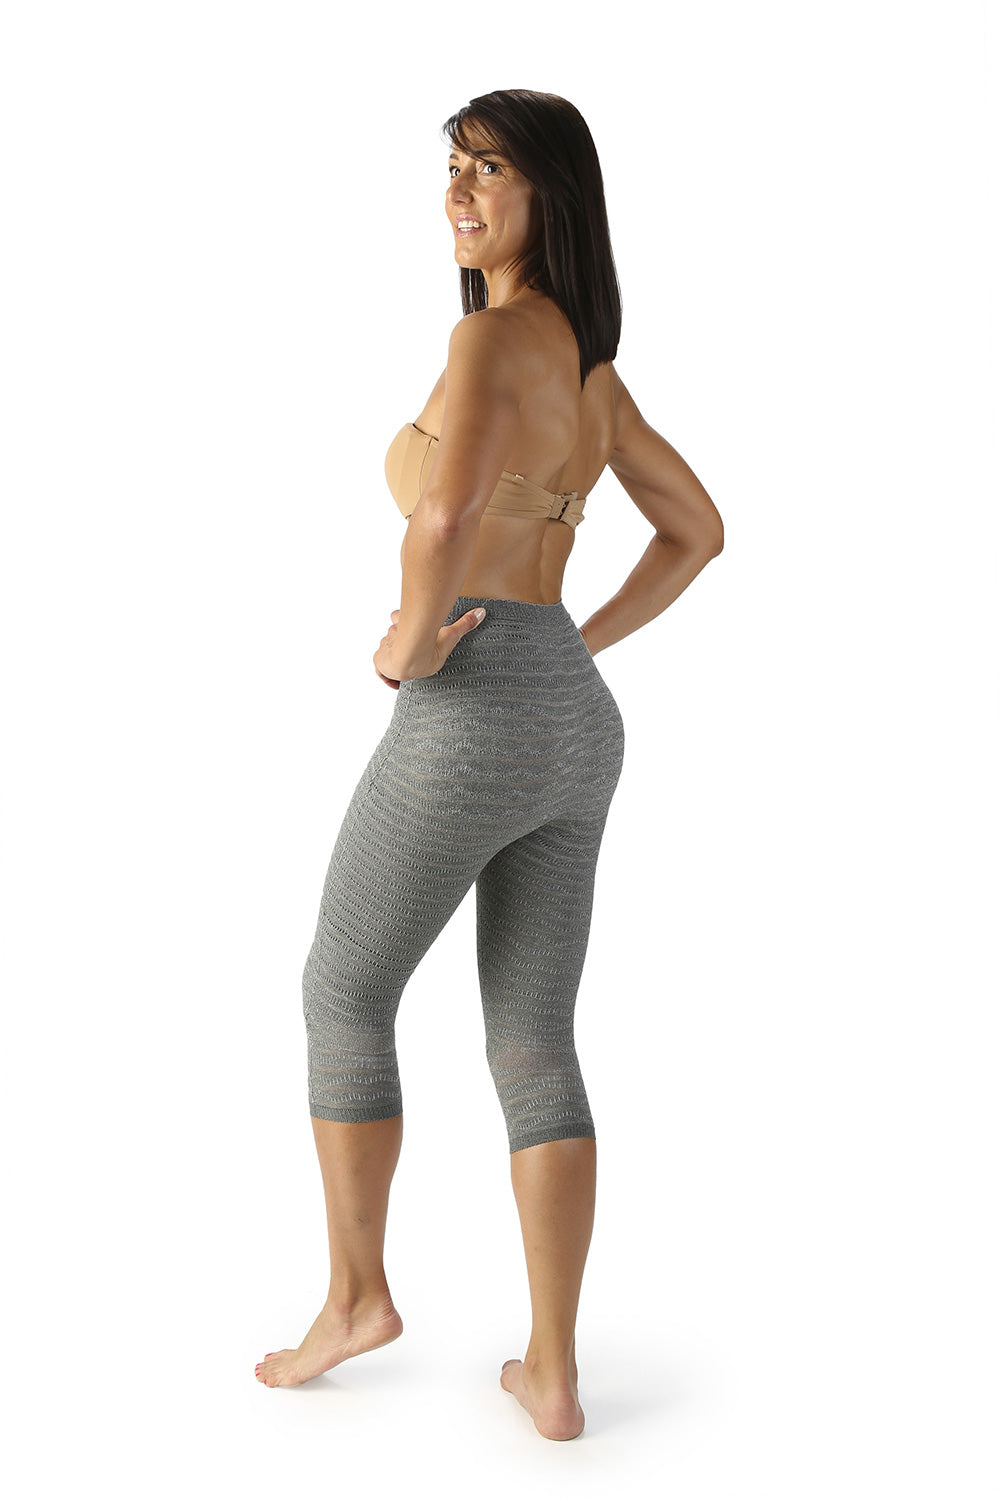 SPIKE-CELL HIGH WAIST 3/4 LENGTH LEGGINGS - 3/4 LEGGINGY